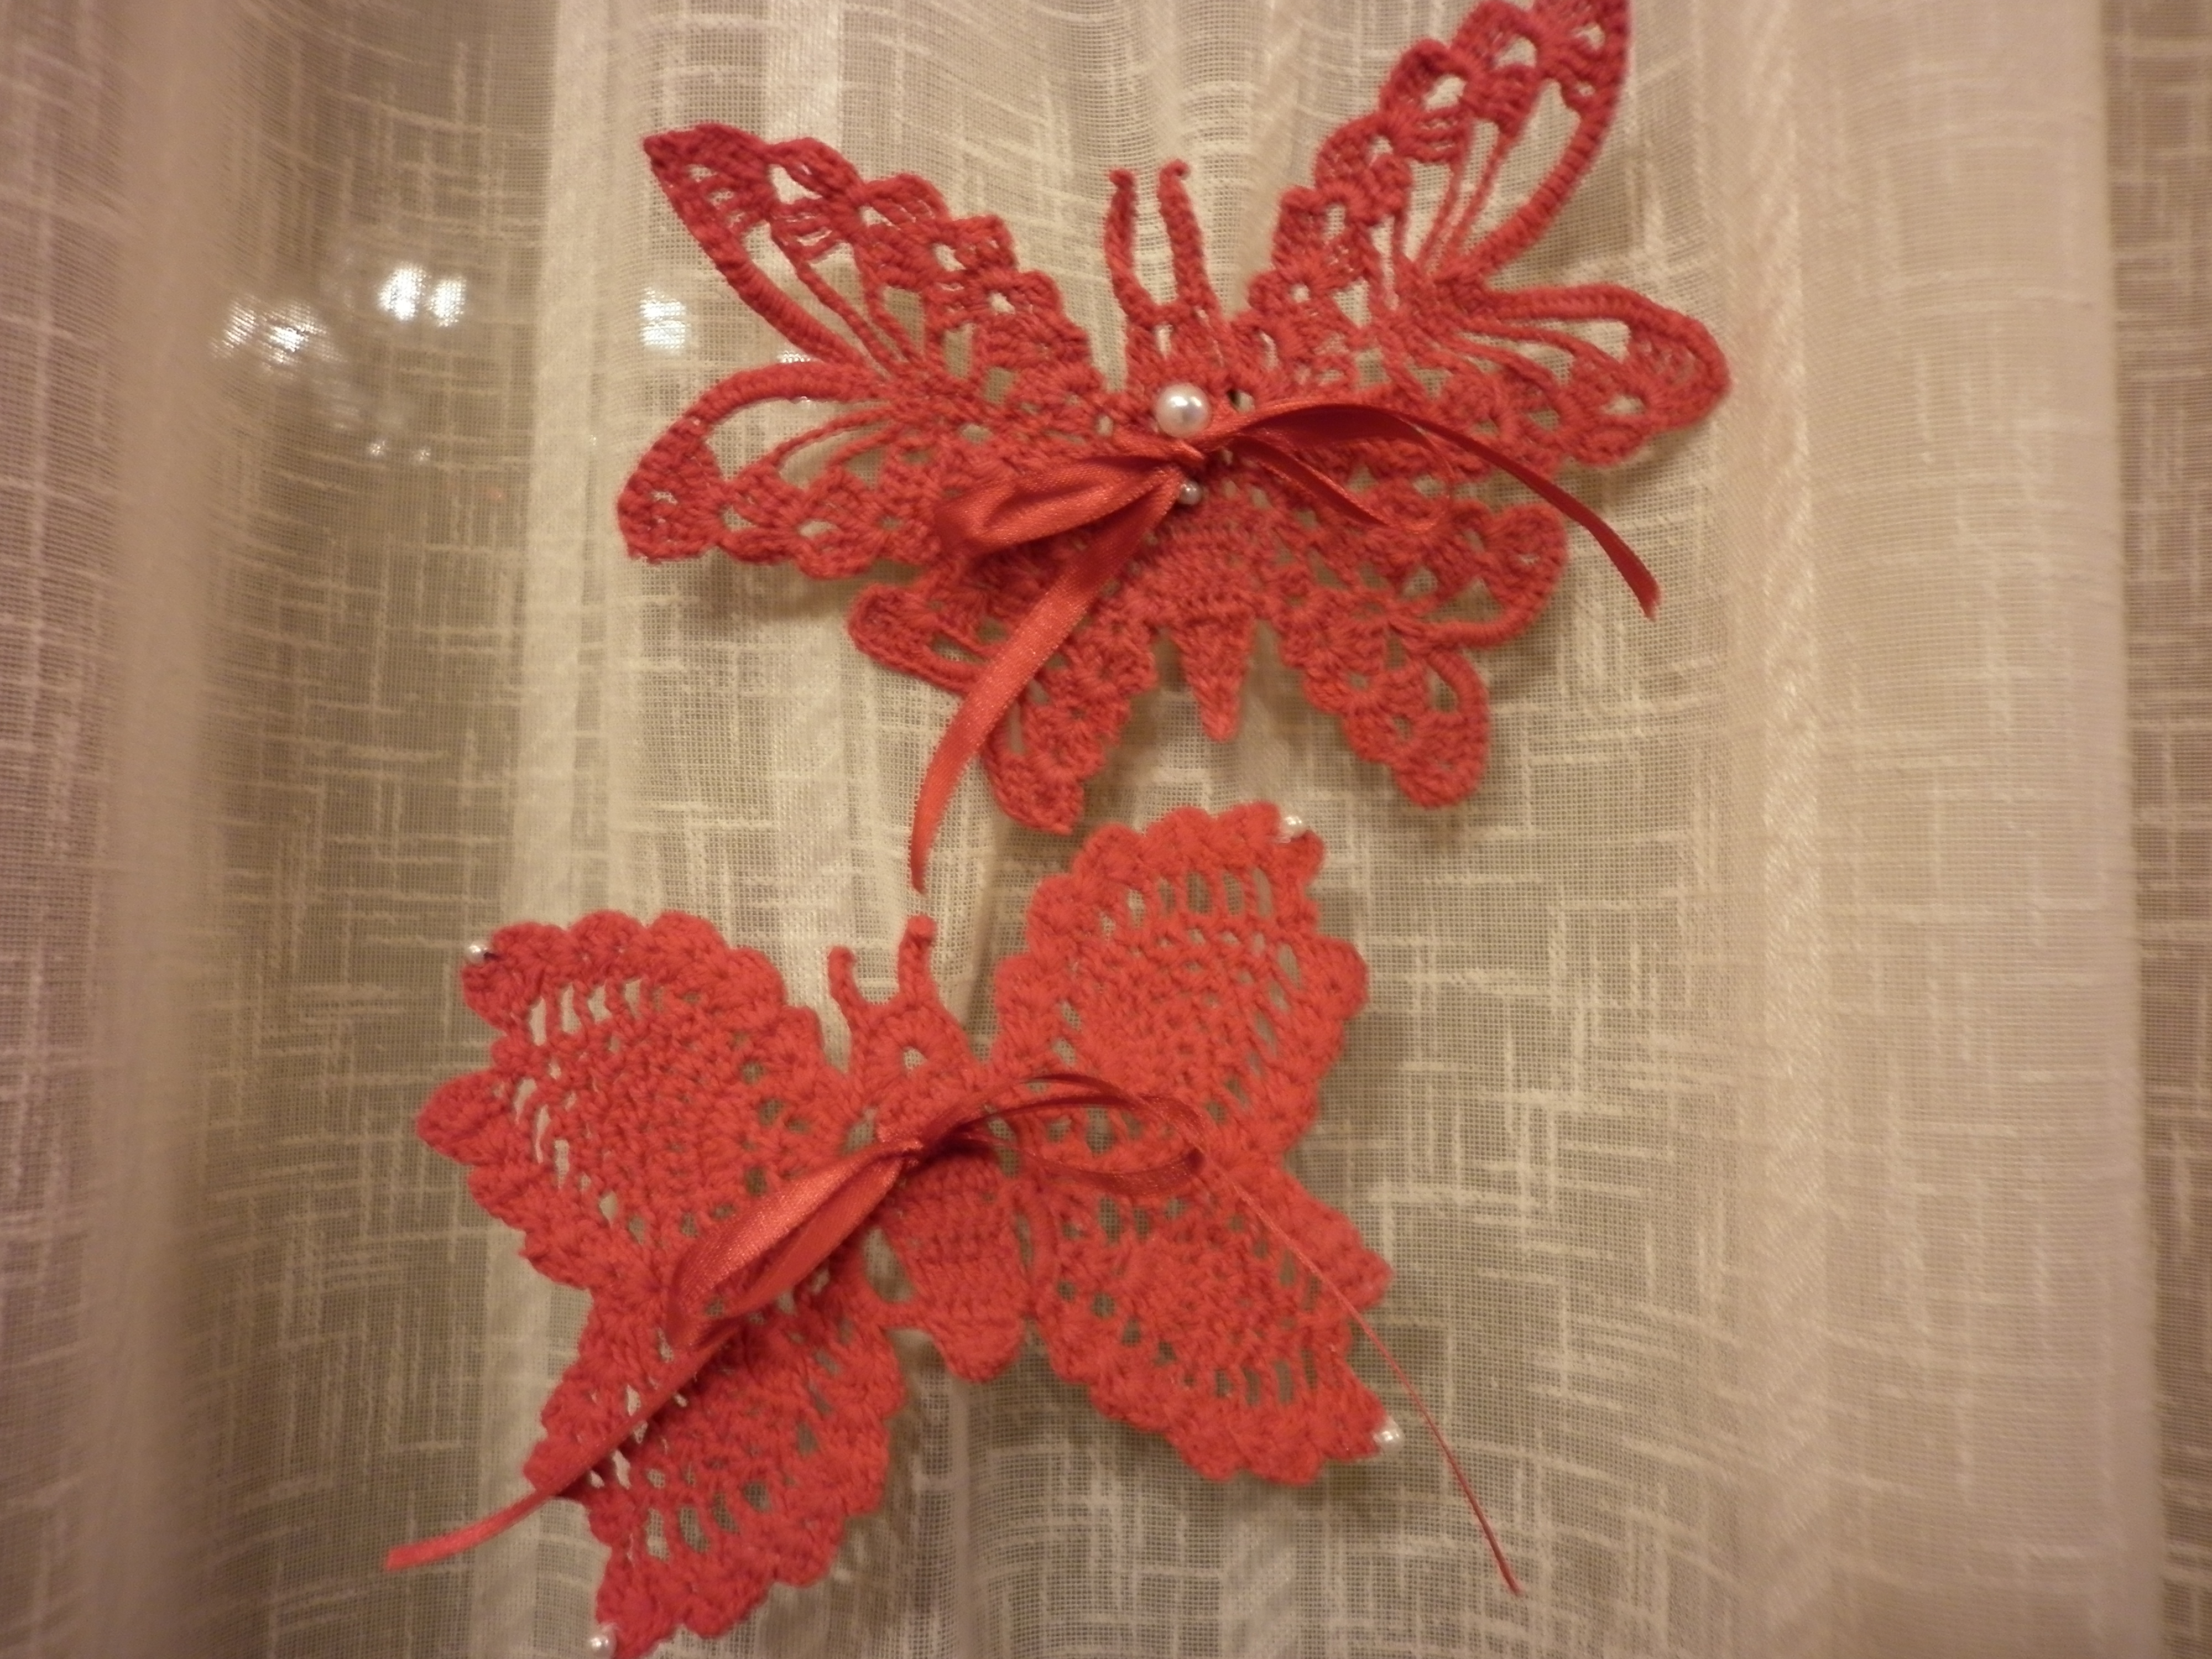 Farfalla All Uncinetto ^ Butterfly Crochet Music Videos Pictures